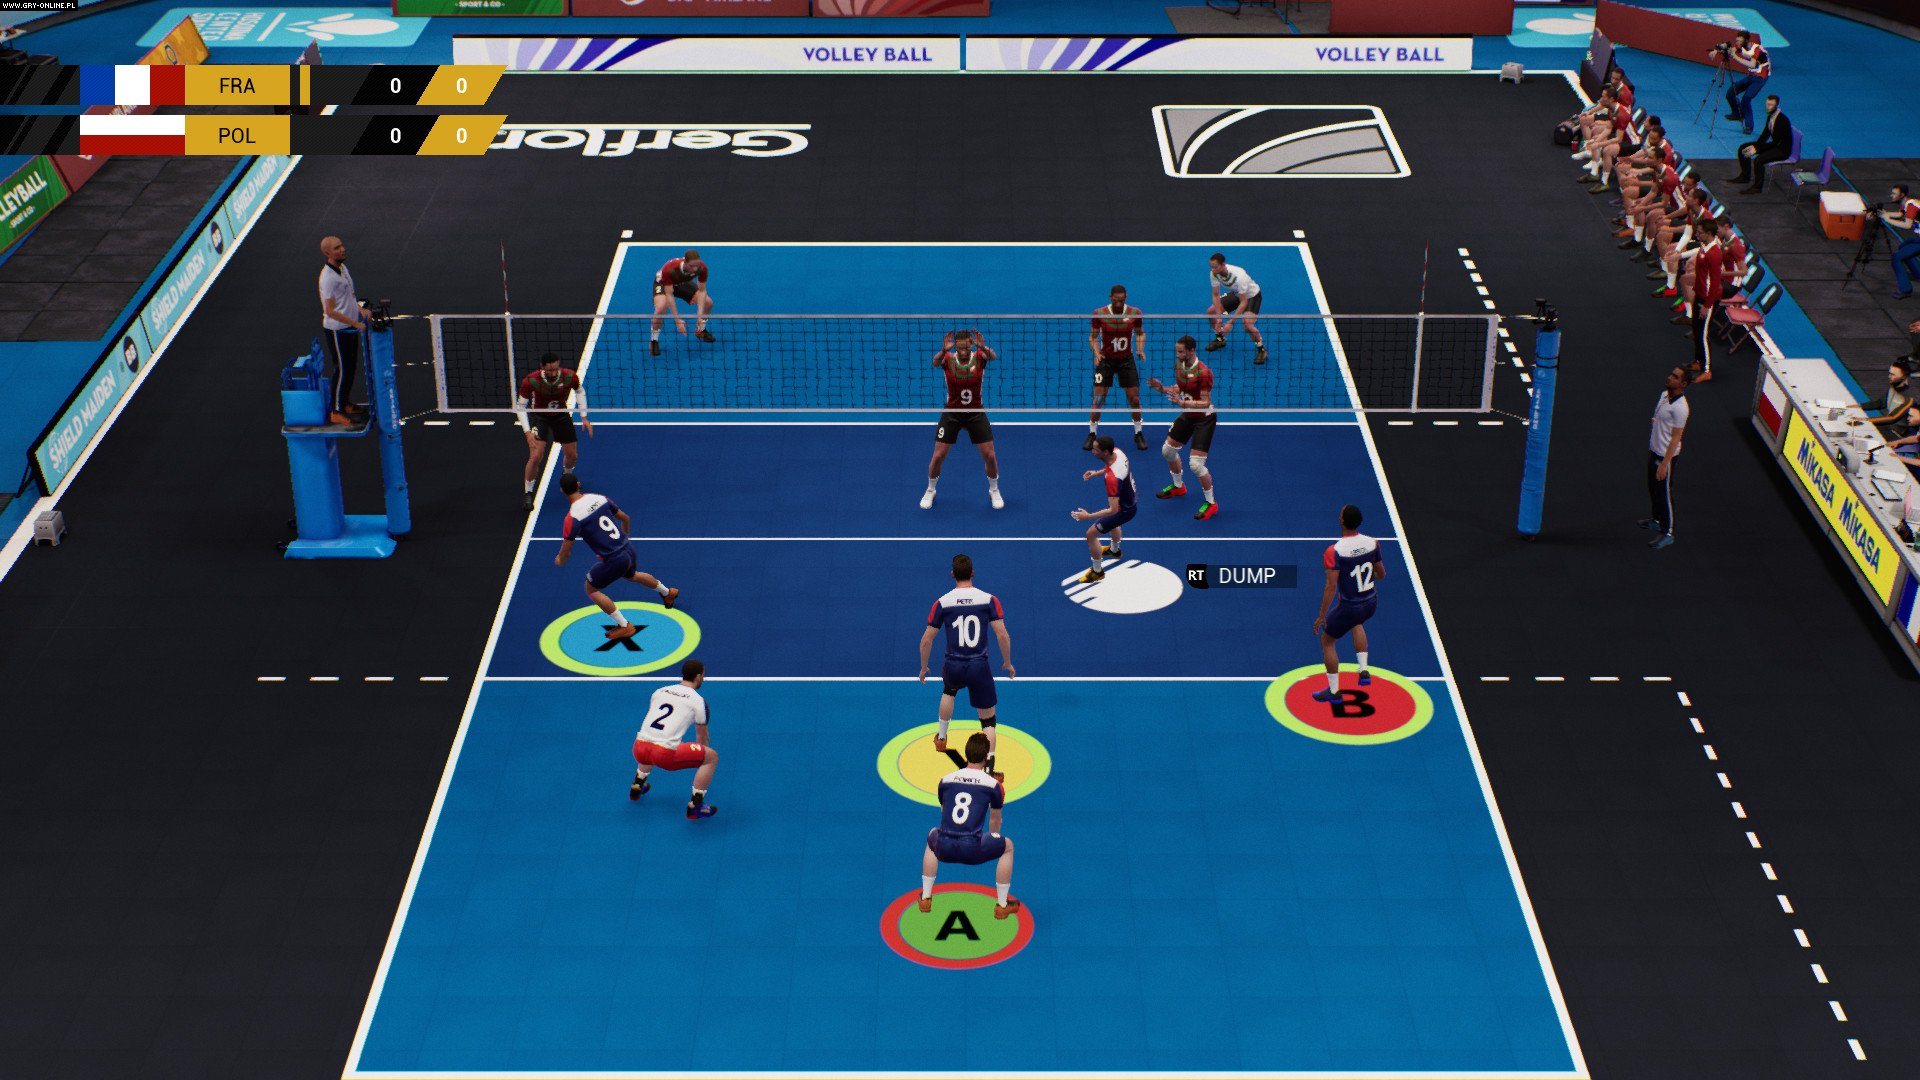 Spike Volleyball PC, PS4, XONE Games Image 1/5, Black Sheep Studio, Bigben Interactive